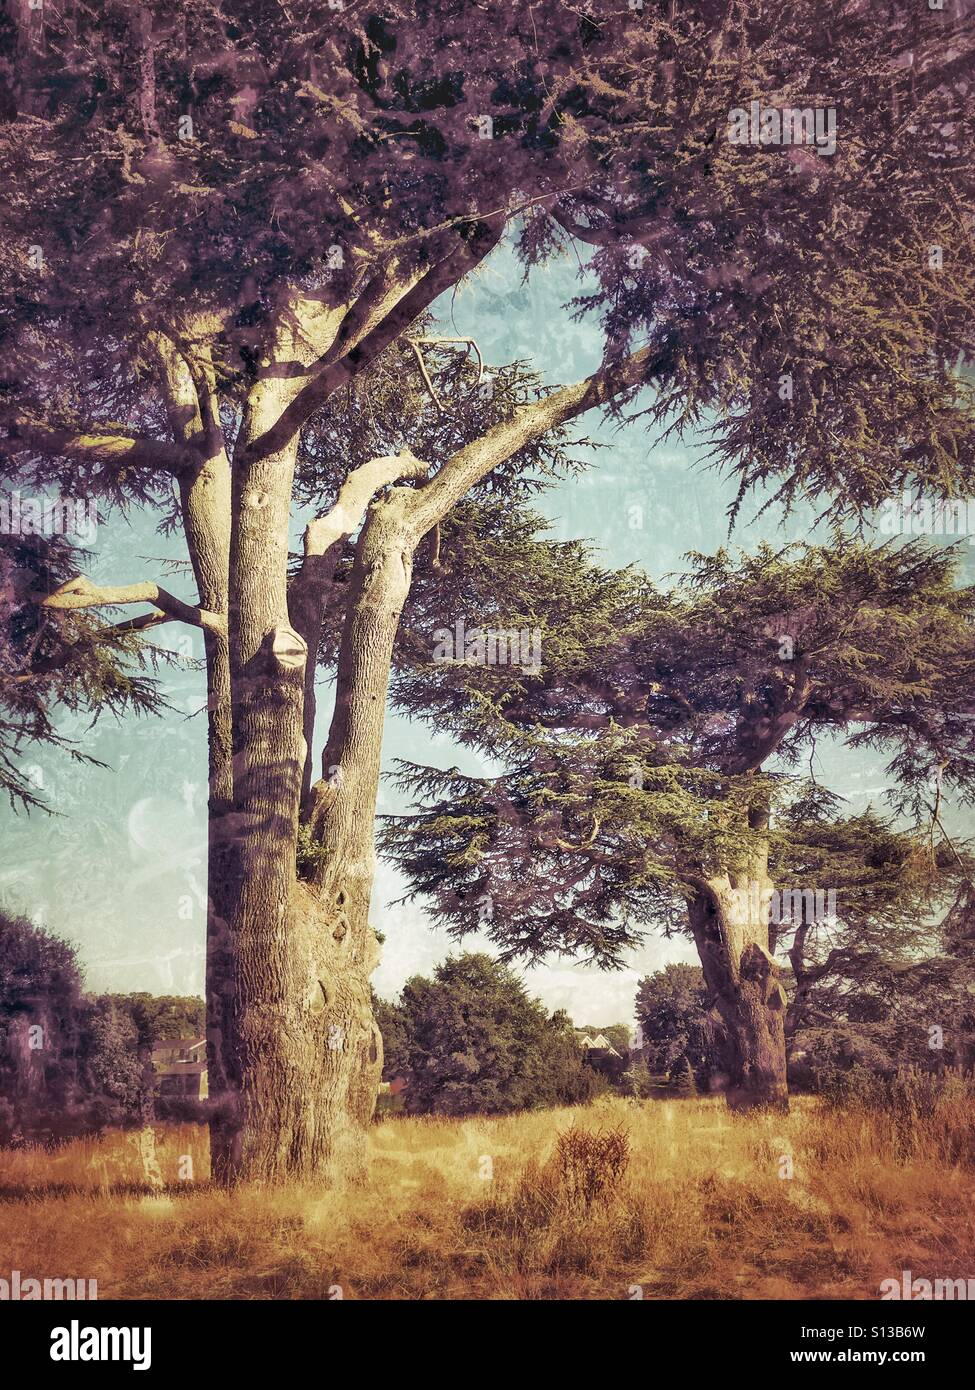 Large trees in an area of woodland in England, grunge filter with muted tones - Stock Image